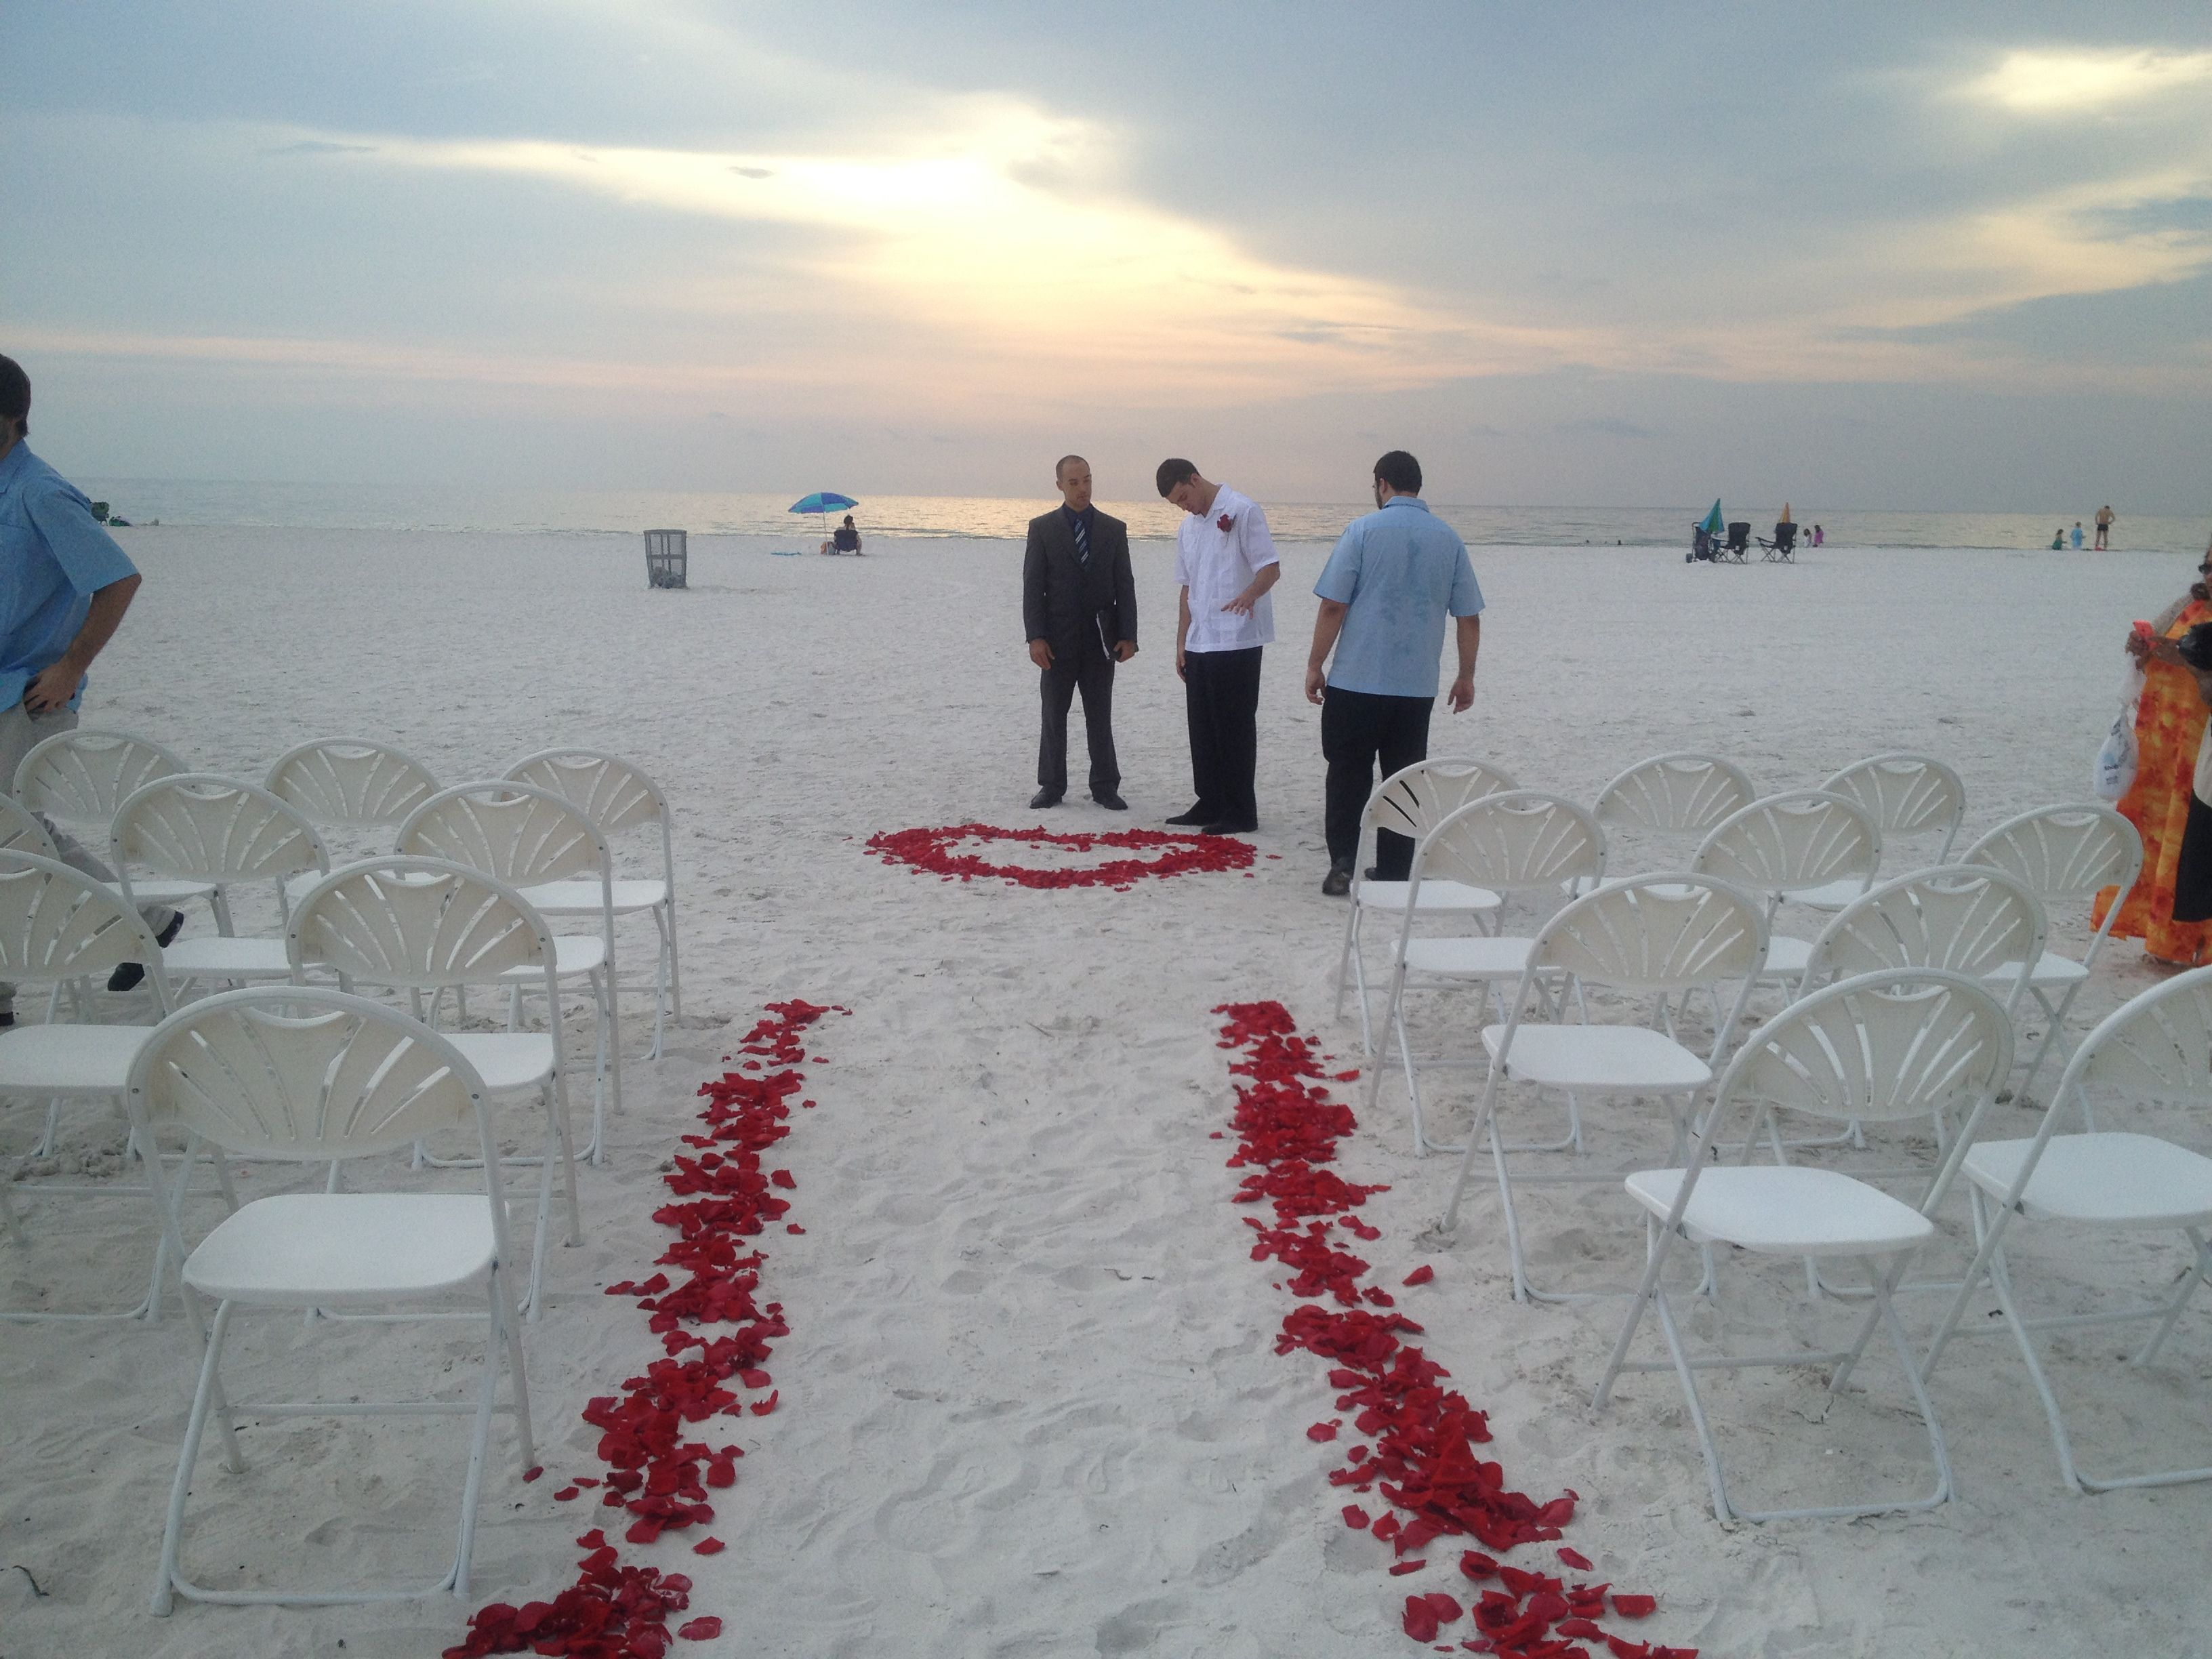 Clearwater beach wedding officiant archives a beautiful